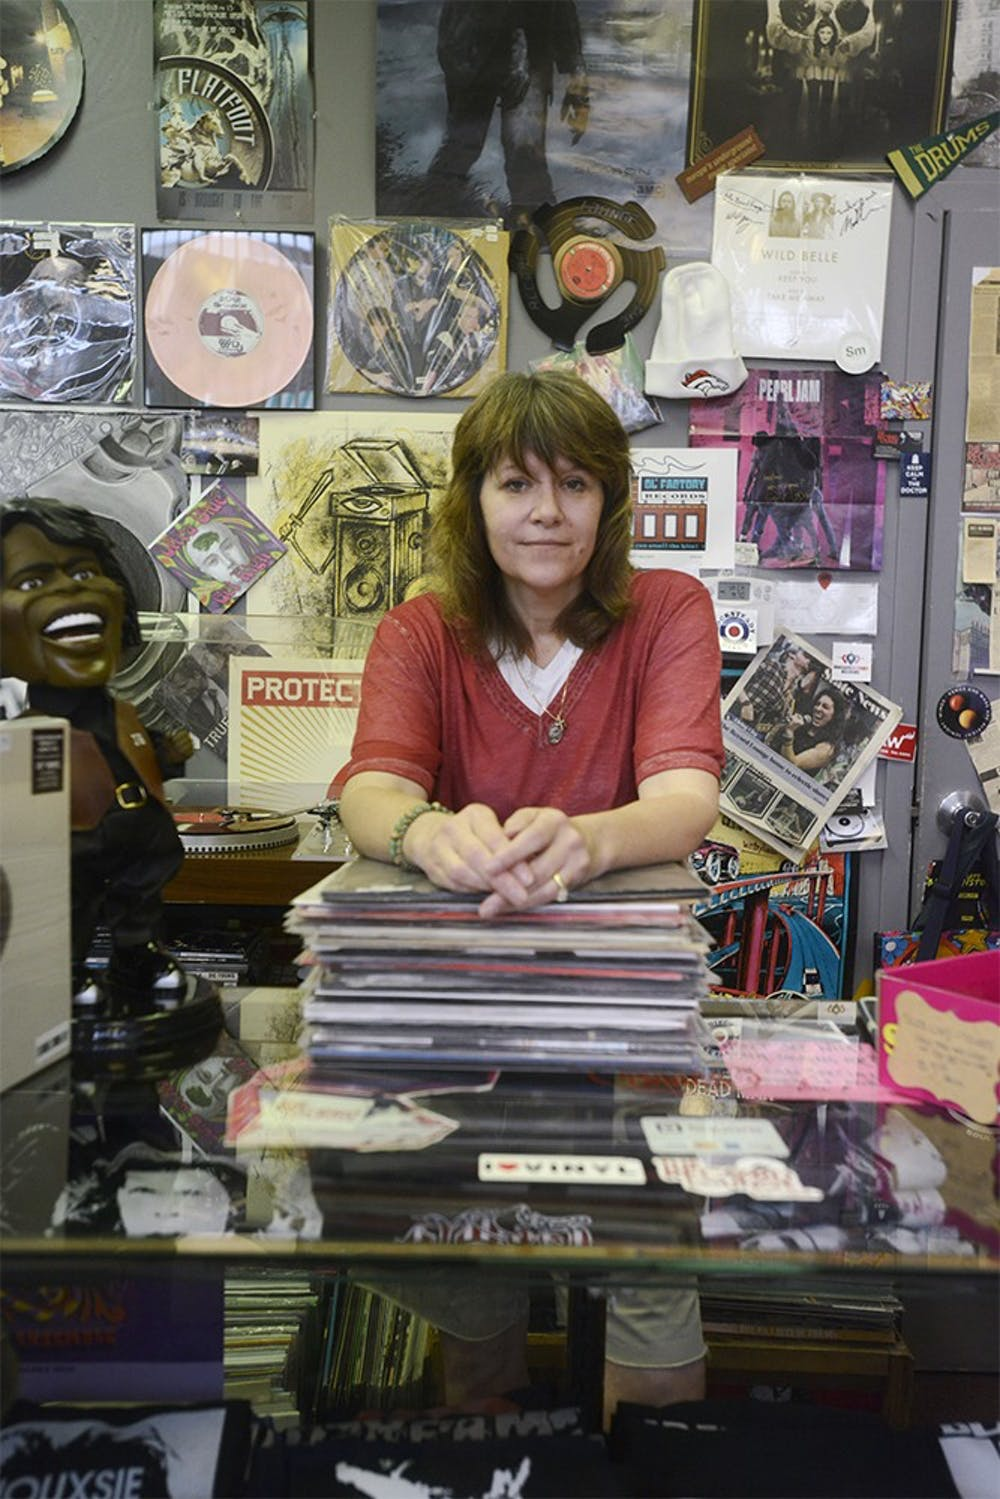 <p>Owner of the Record Lounge in East Lansing, Heather Frarey, says her favorite part of working in this city is the people she gets to meet and talk about music with on a day-to-day basis. Wyatt Giangrande/State News</p>